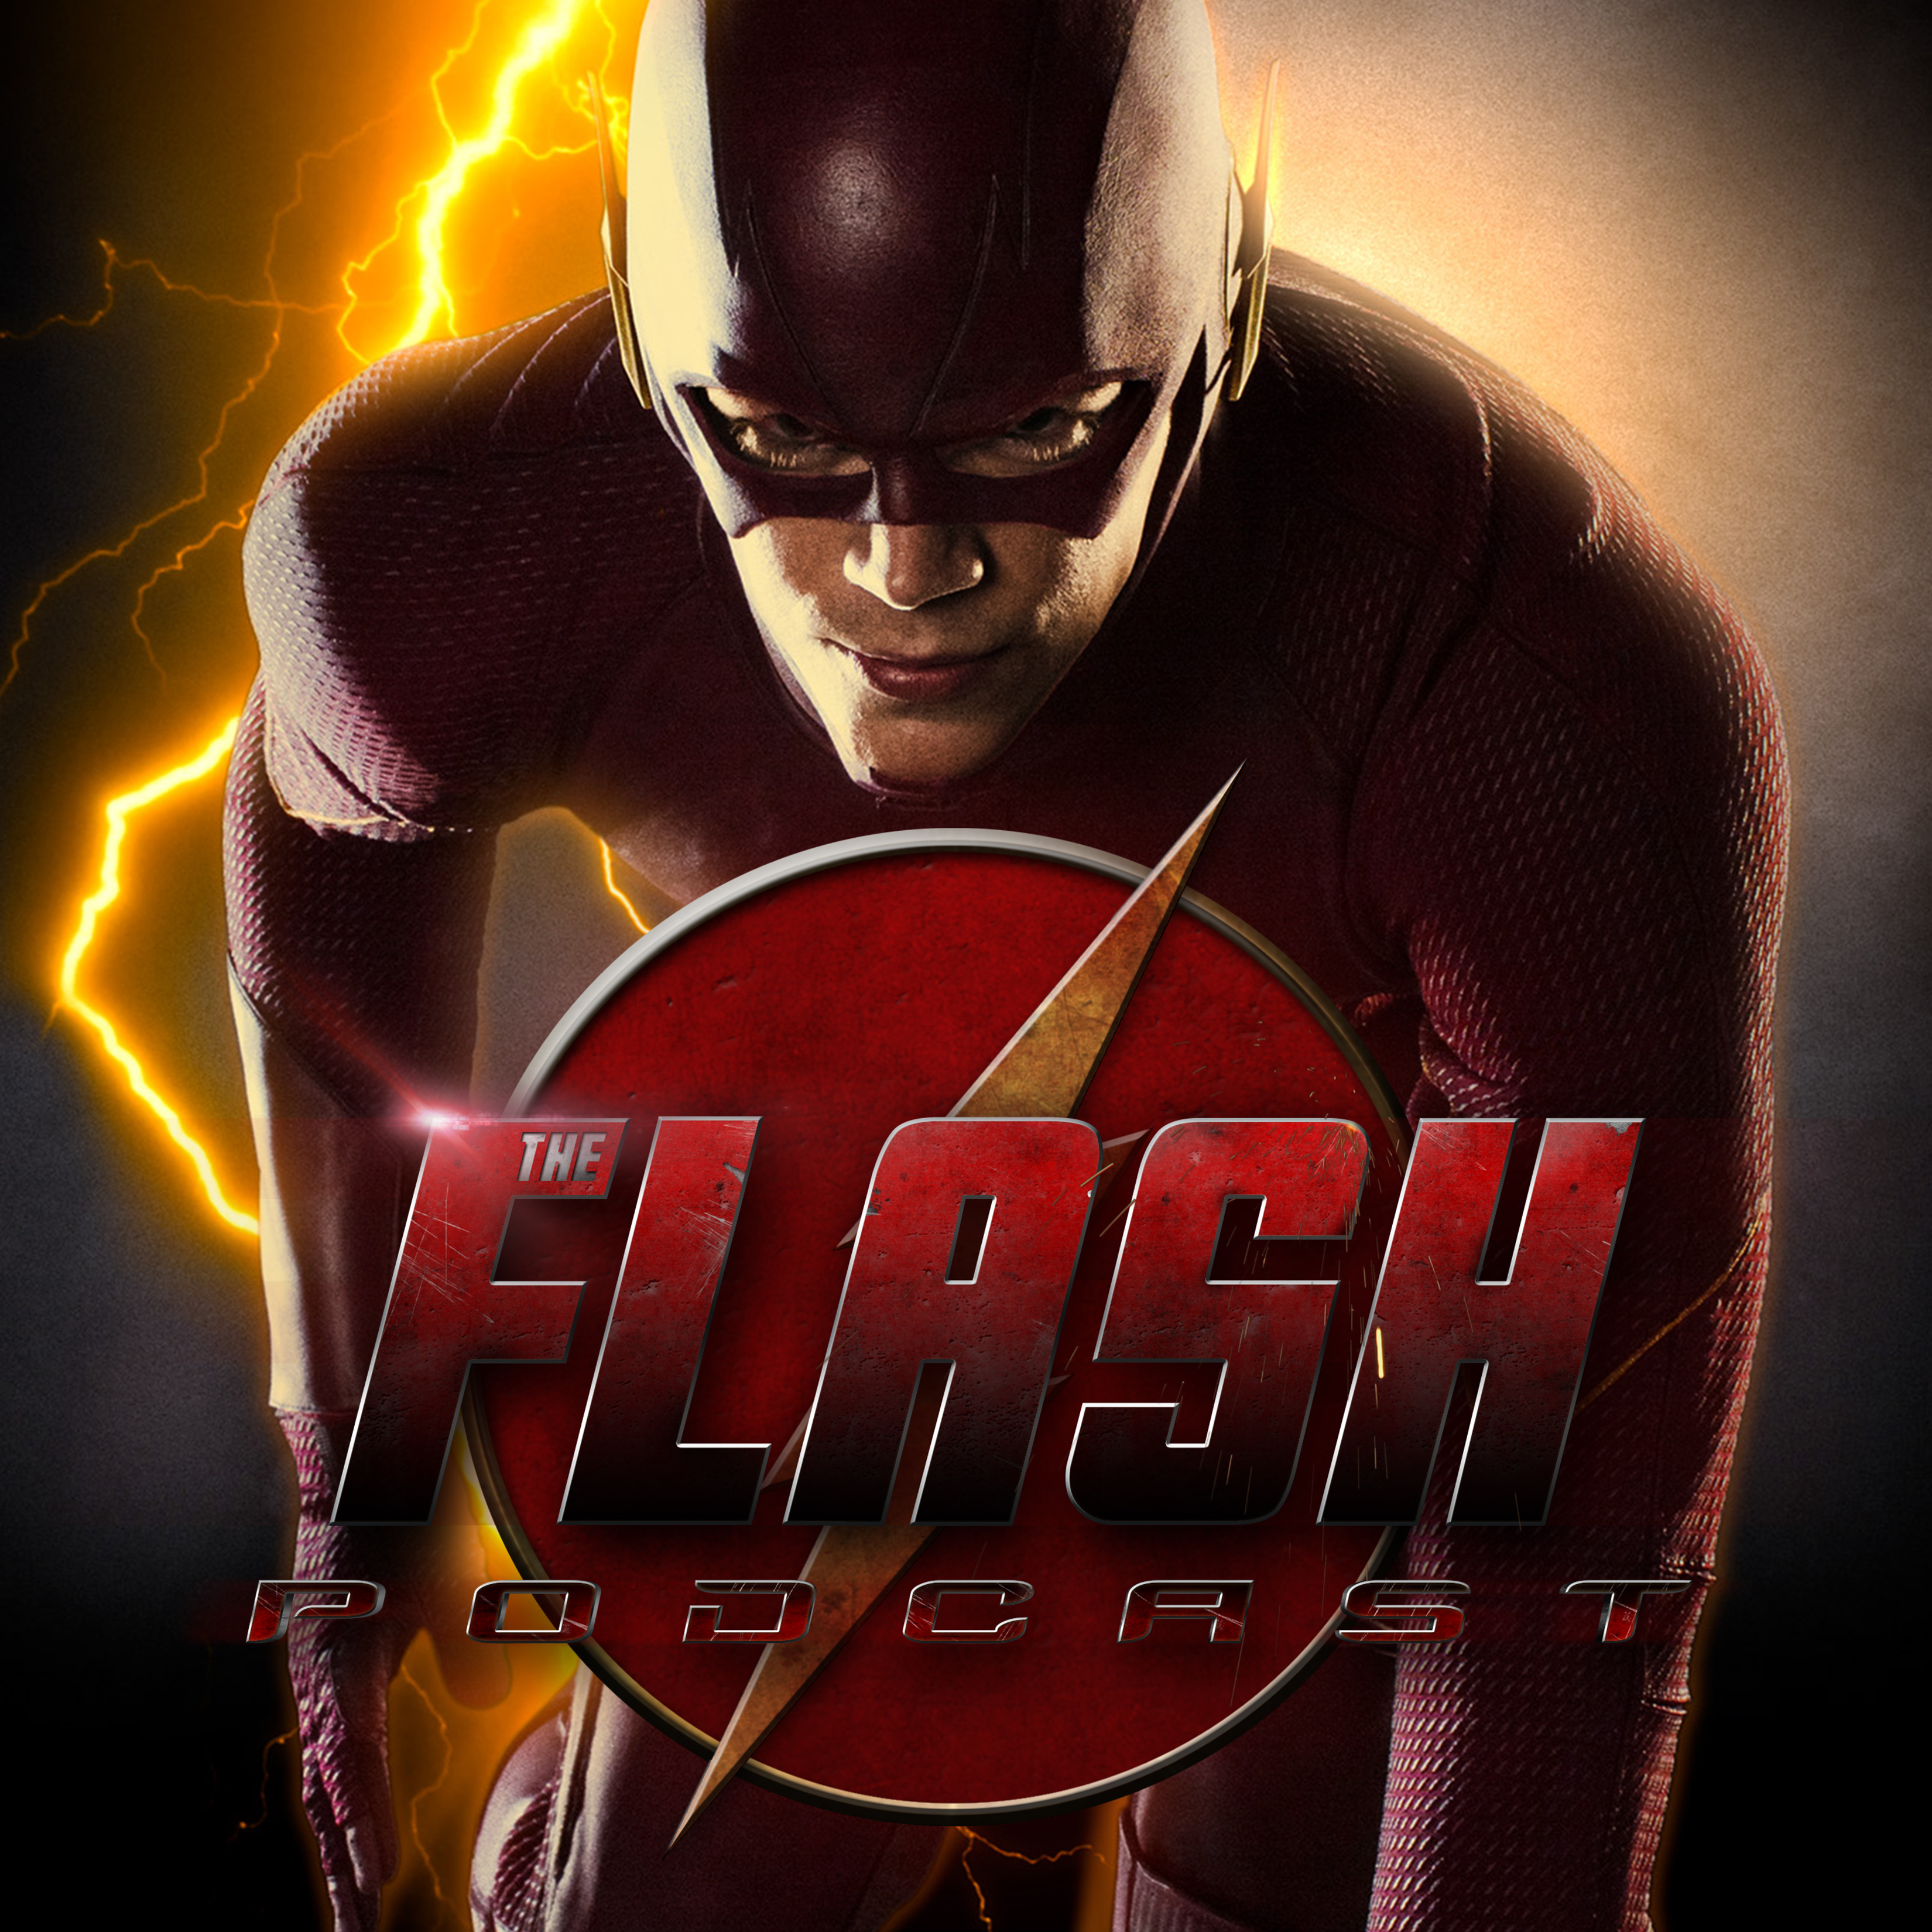 The Flash Podcast Special Edition 07 - Is Flashpoint Coming To The Flash?